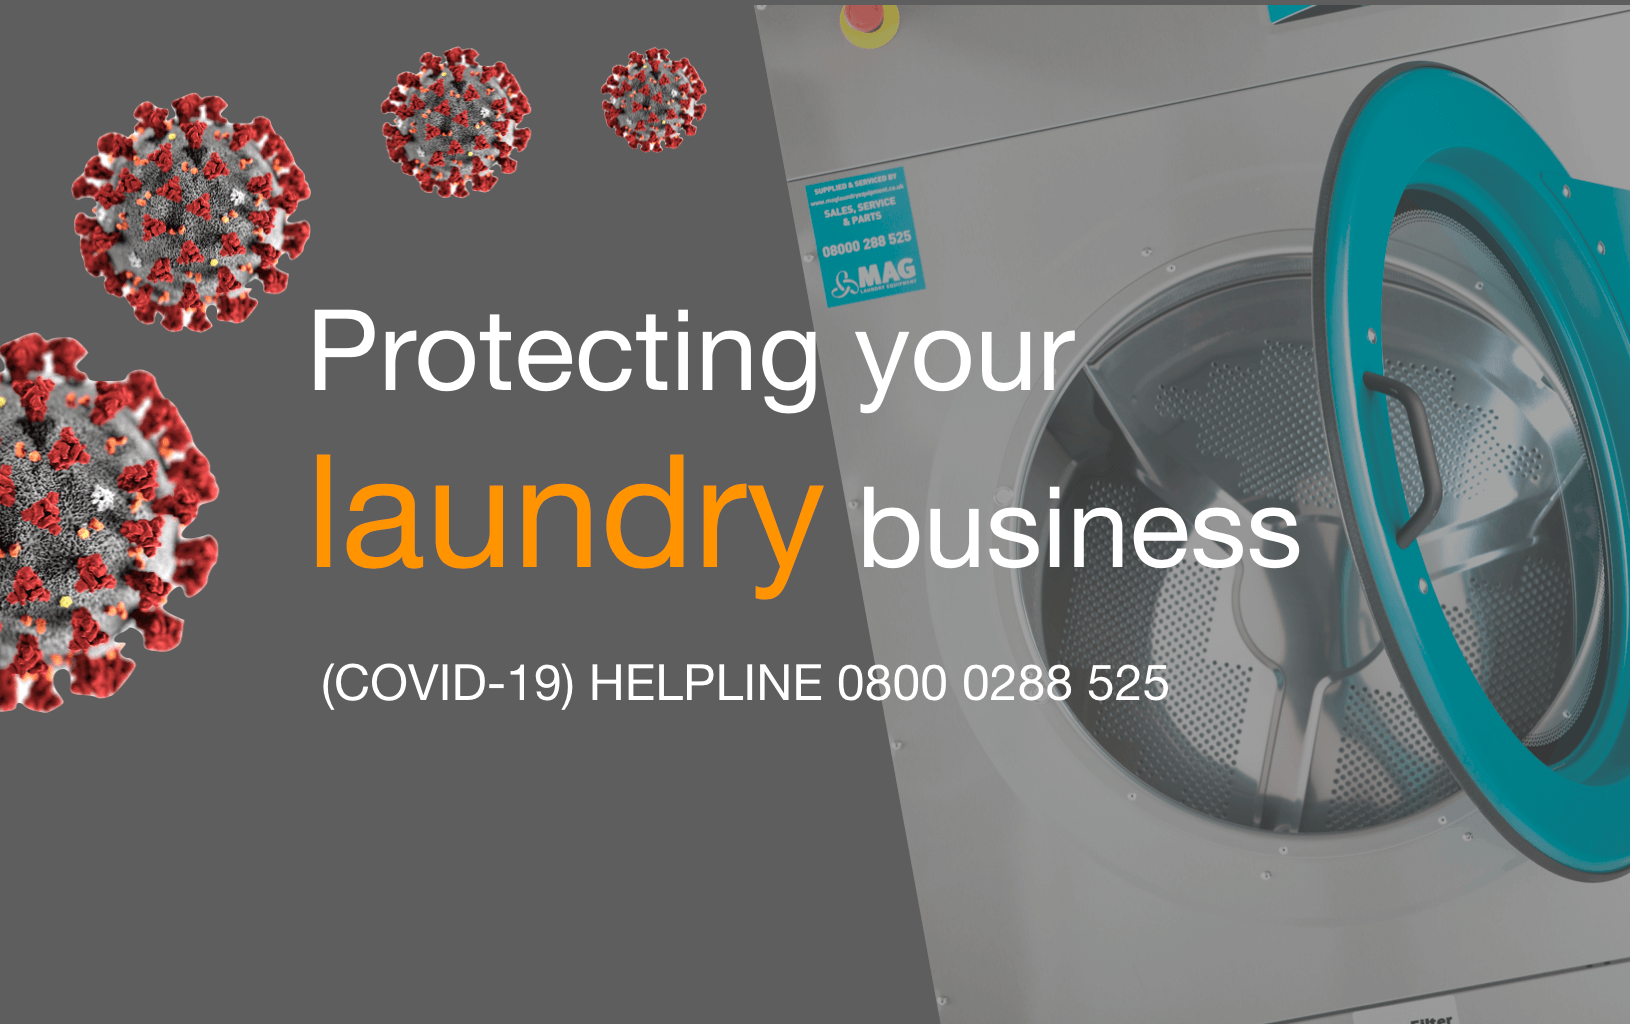 Covid Laundry Helpline